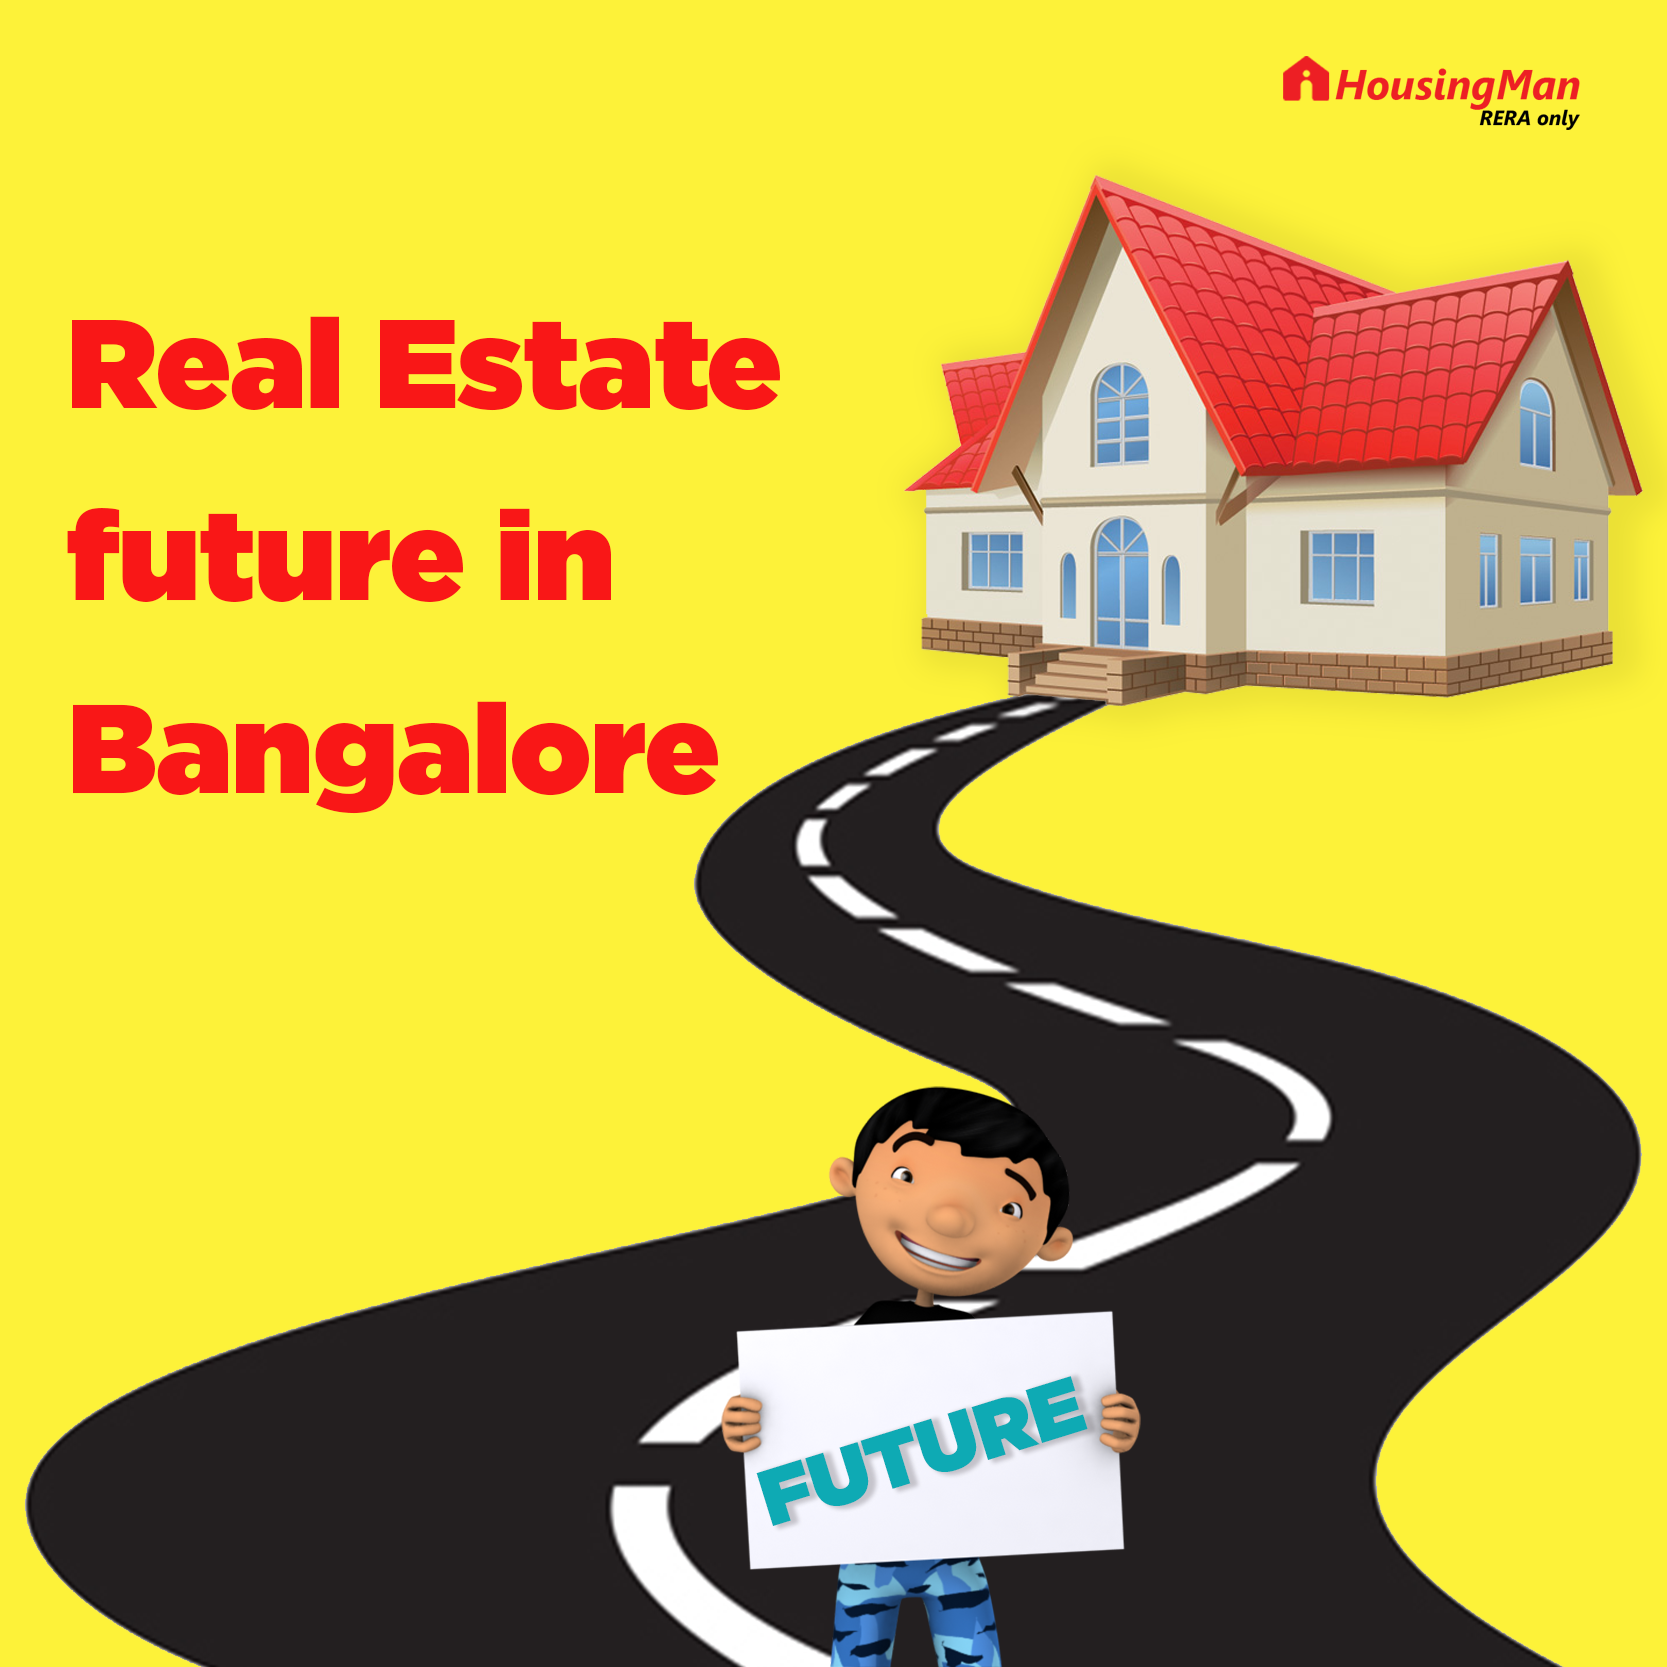 Real Estate Future In Bangalore